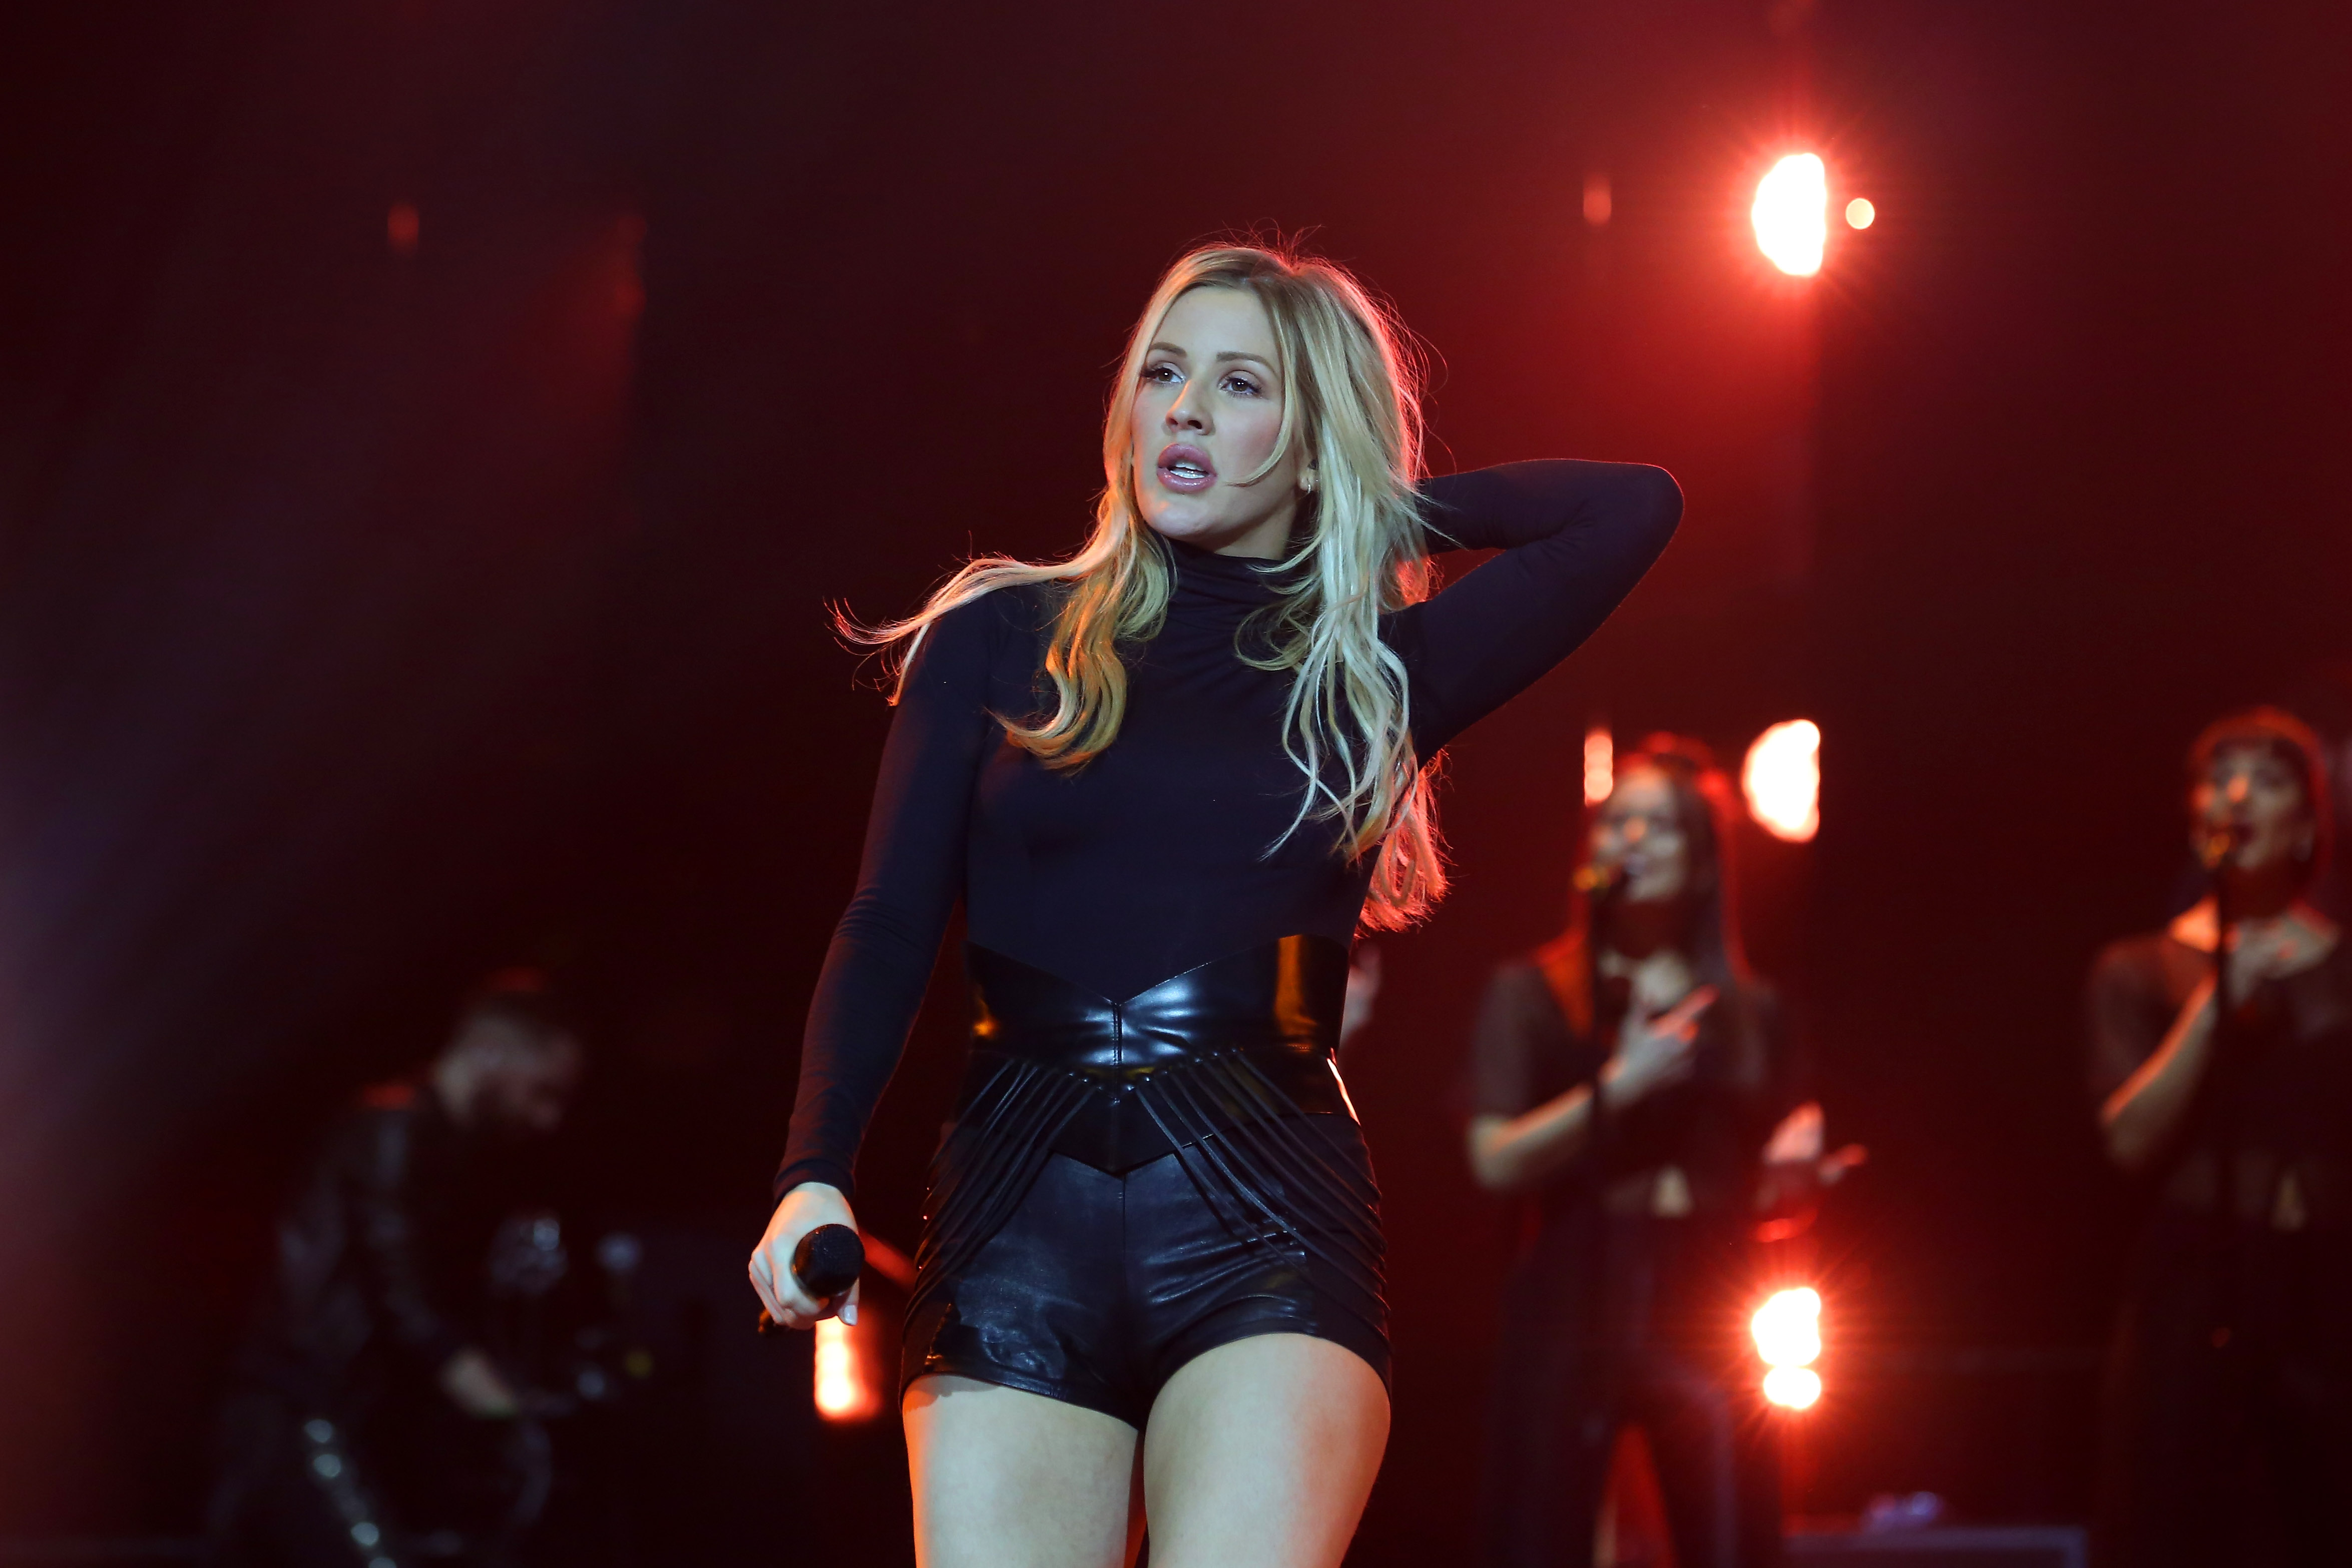 WATCH: Ellie Goulding pauses concert so fan can propose to his partner live on stage